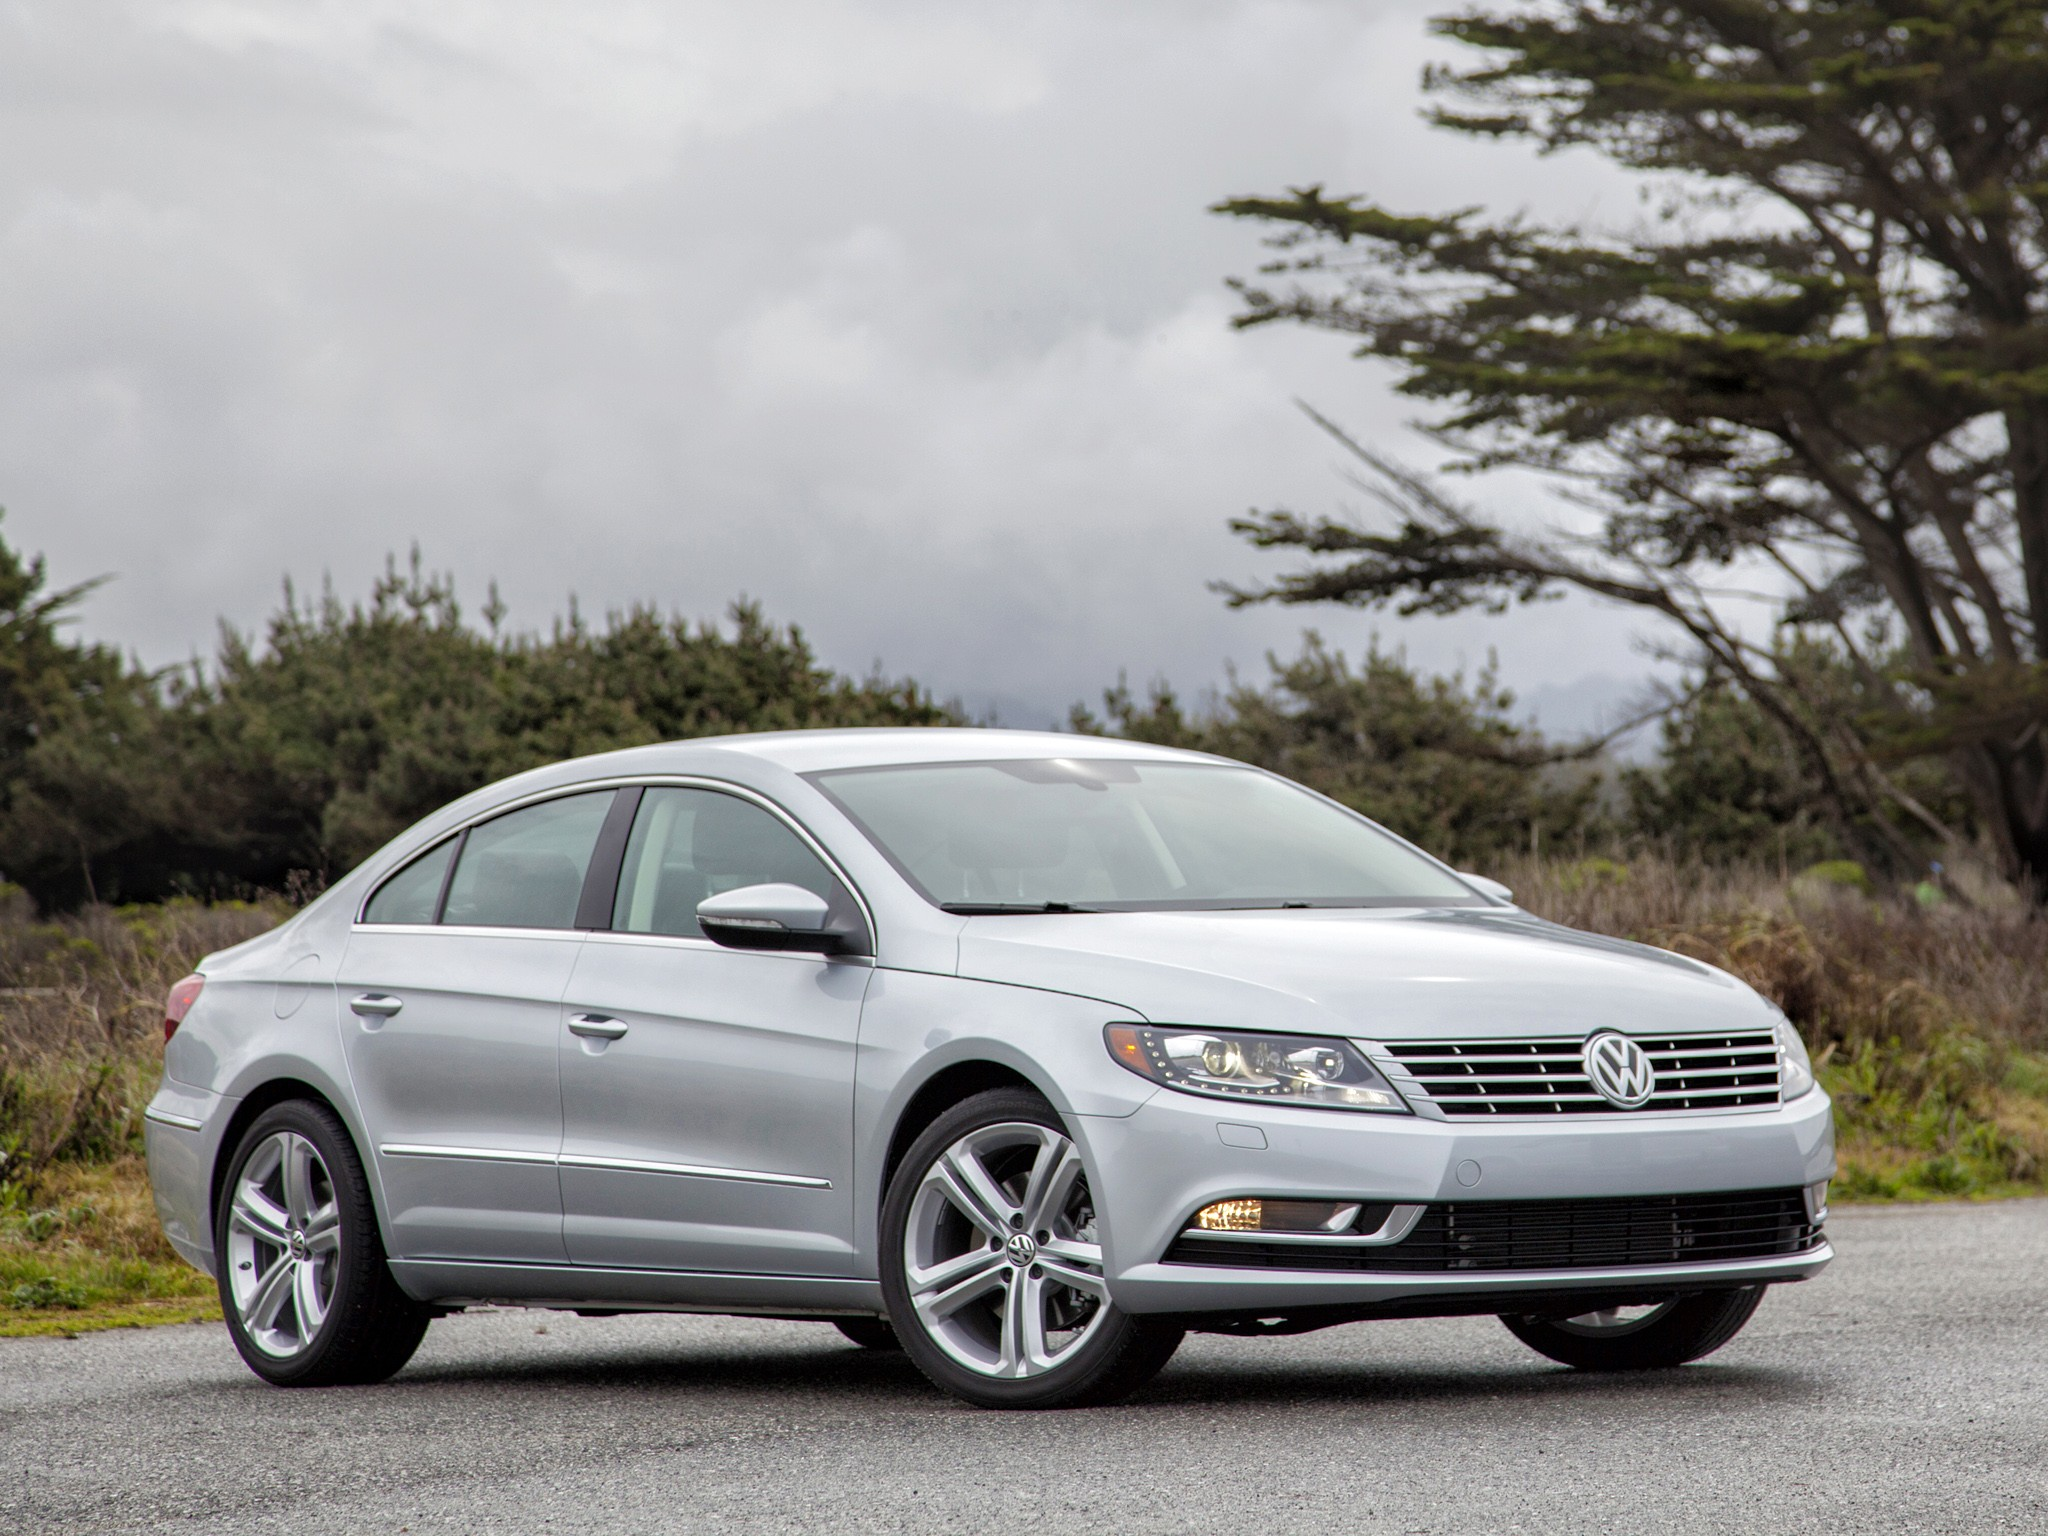 VOLKSWAGEN CC specs & photos - 2012, 2013, 2014, 2015, 2016, 2017 - autoevolution